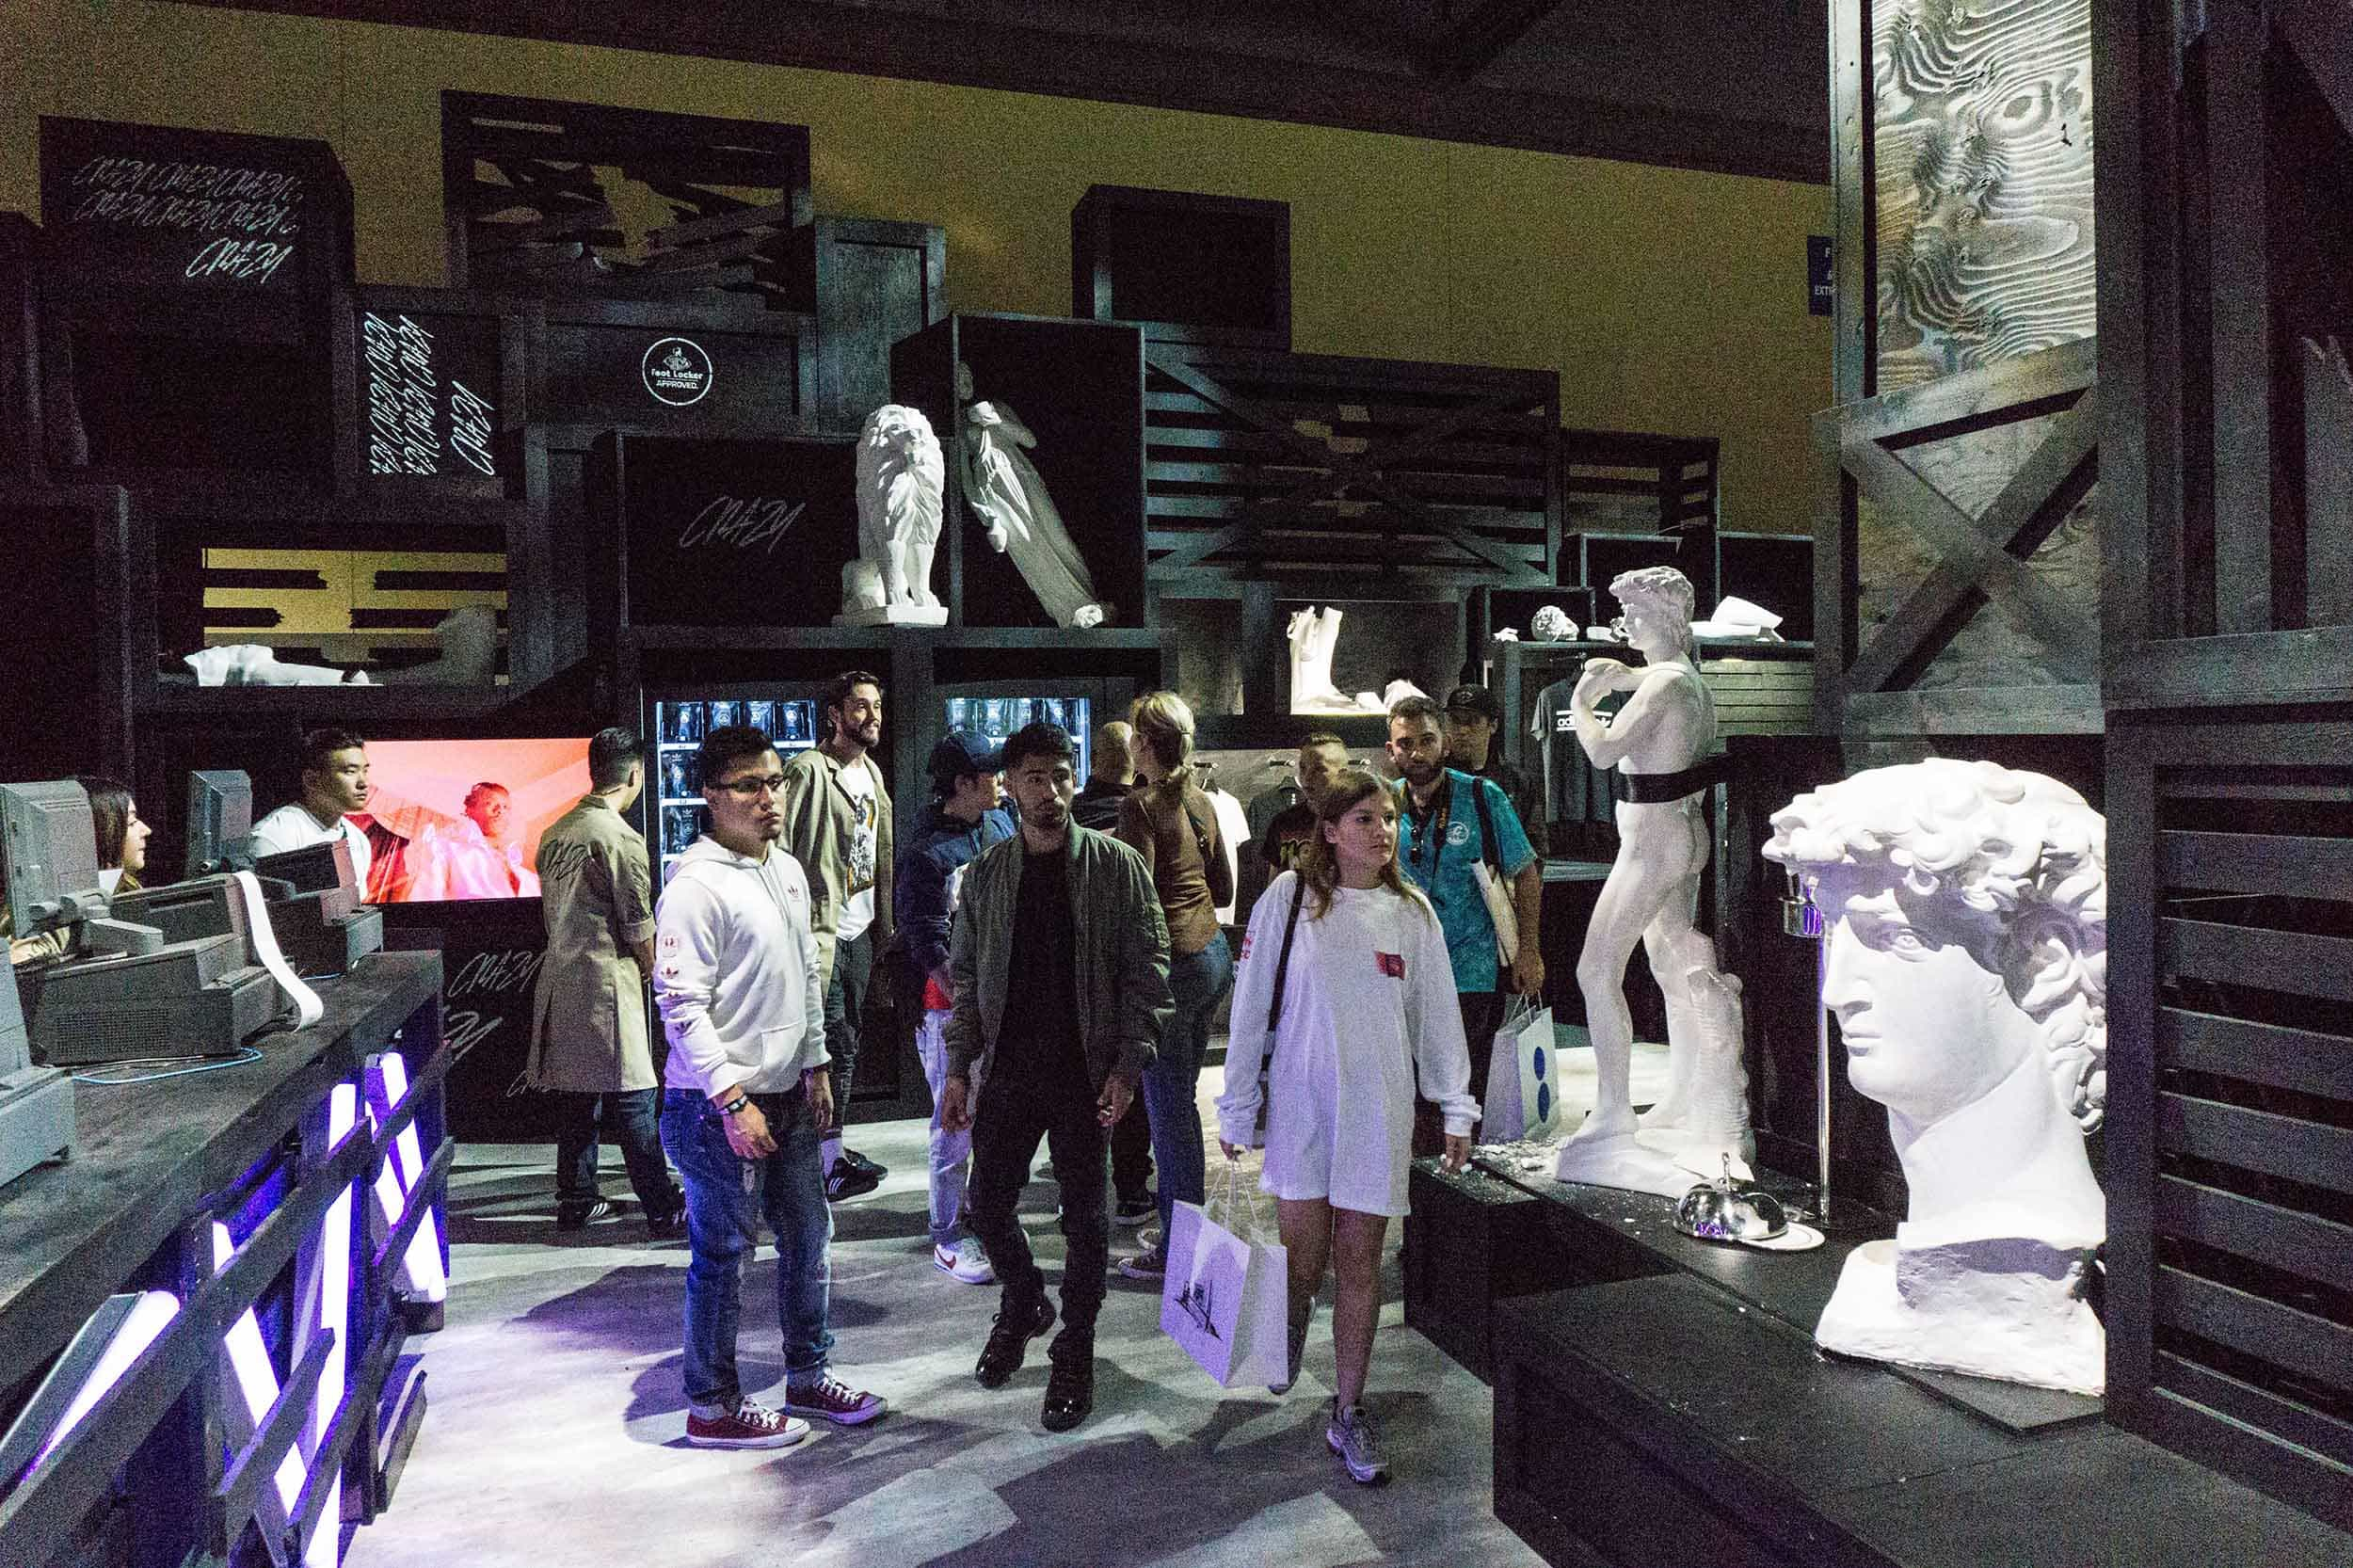 Crowd at Footlocker ComplexCon